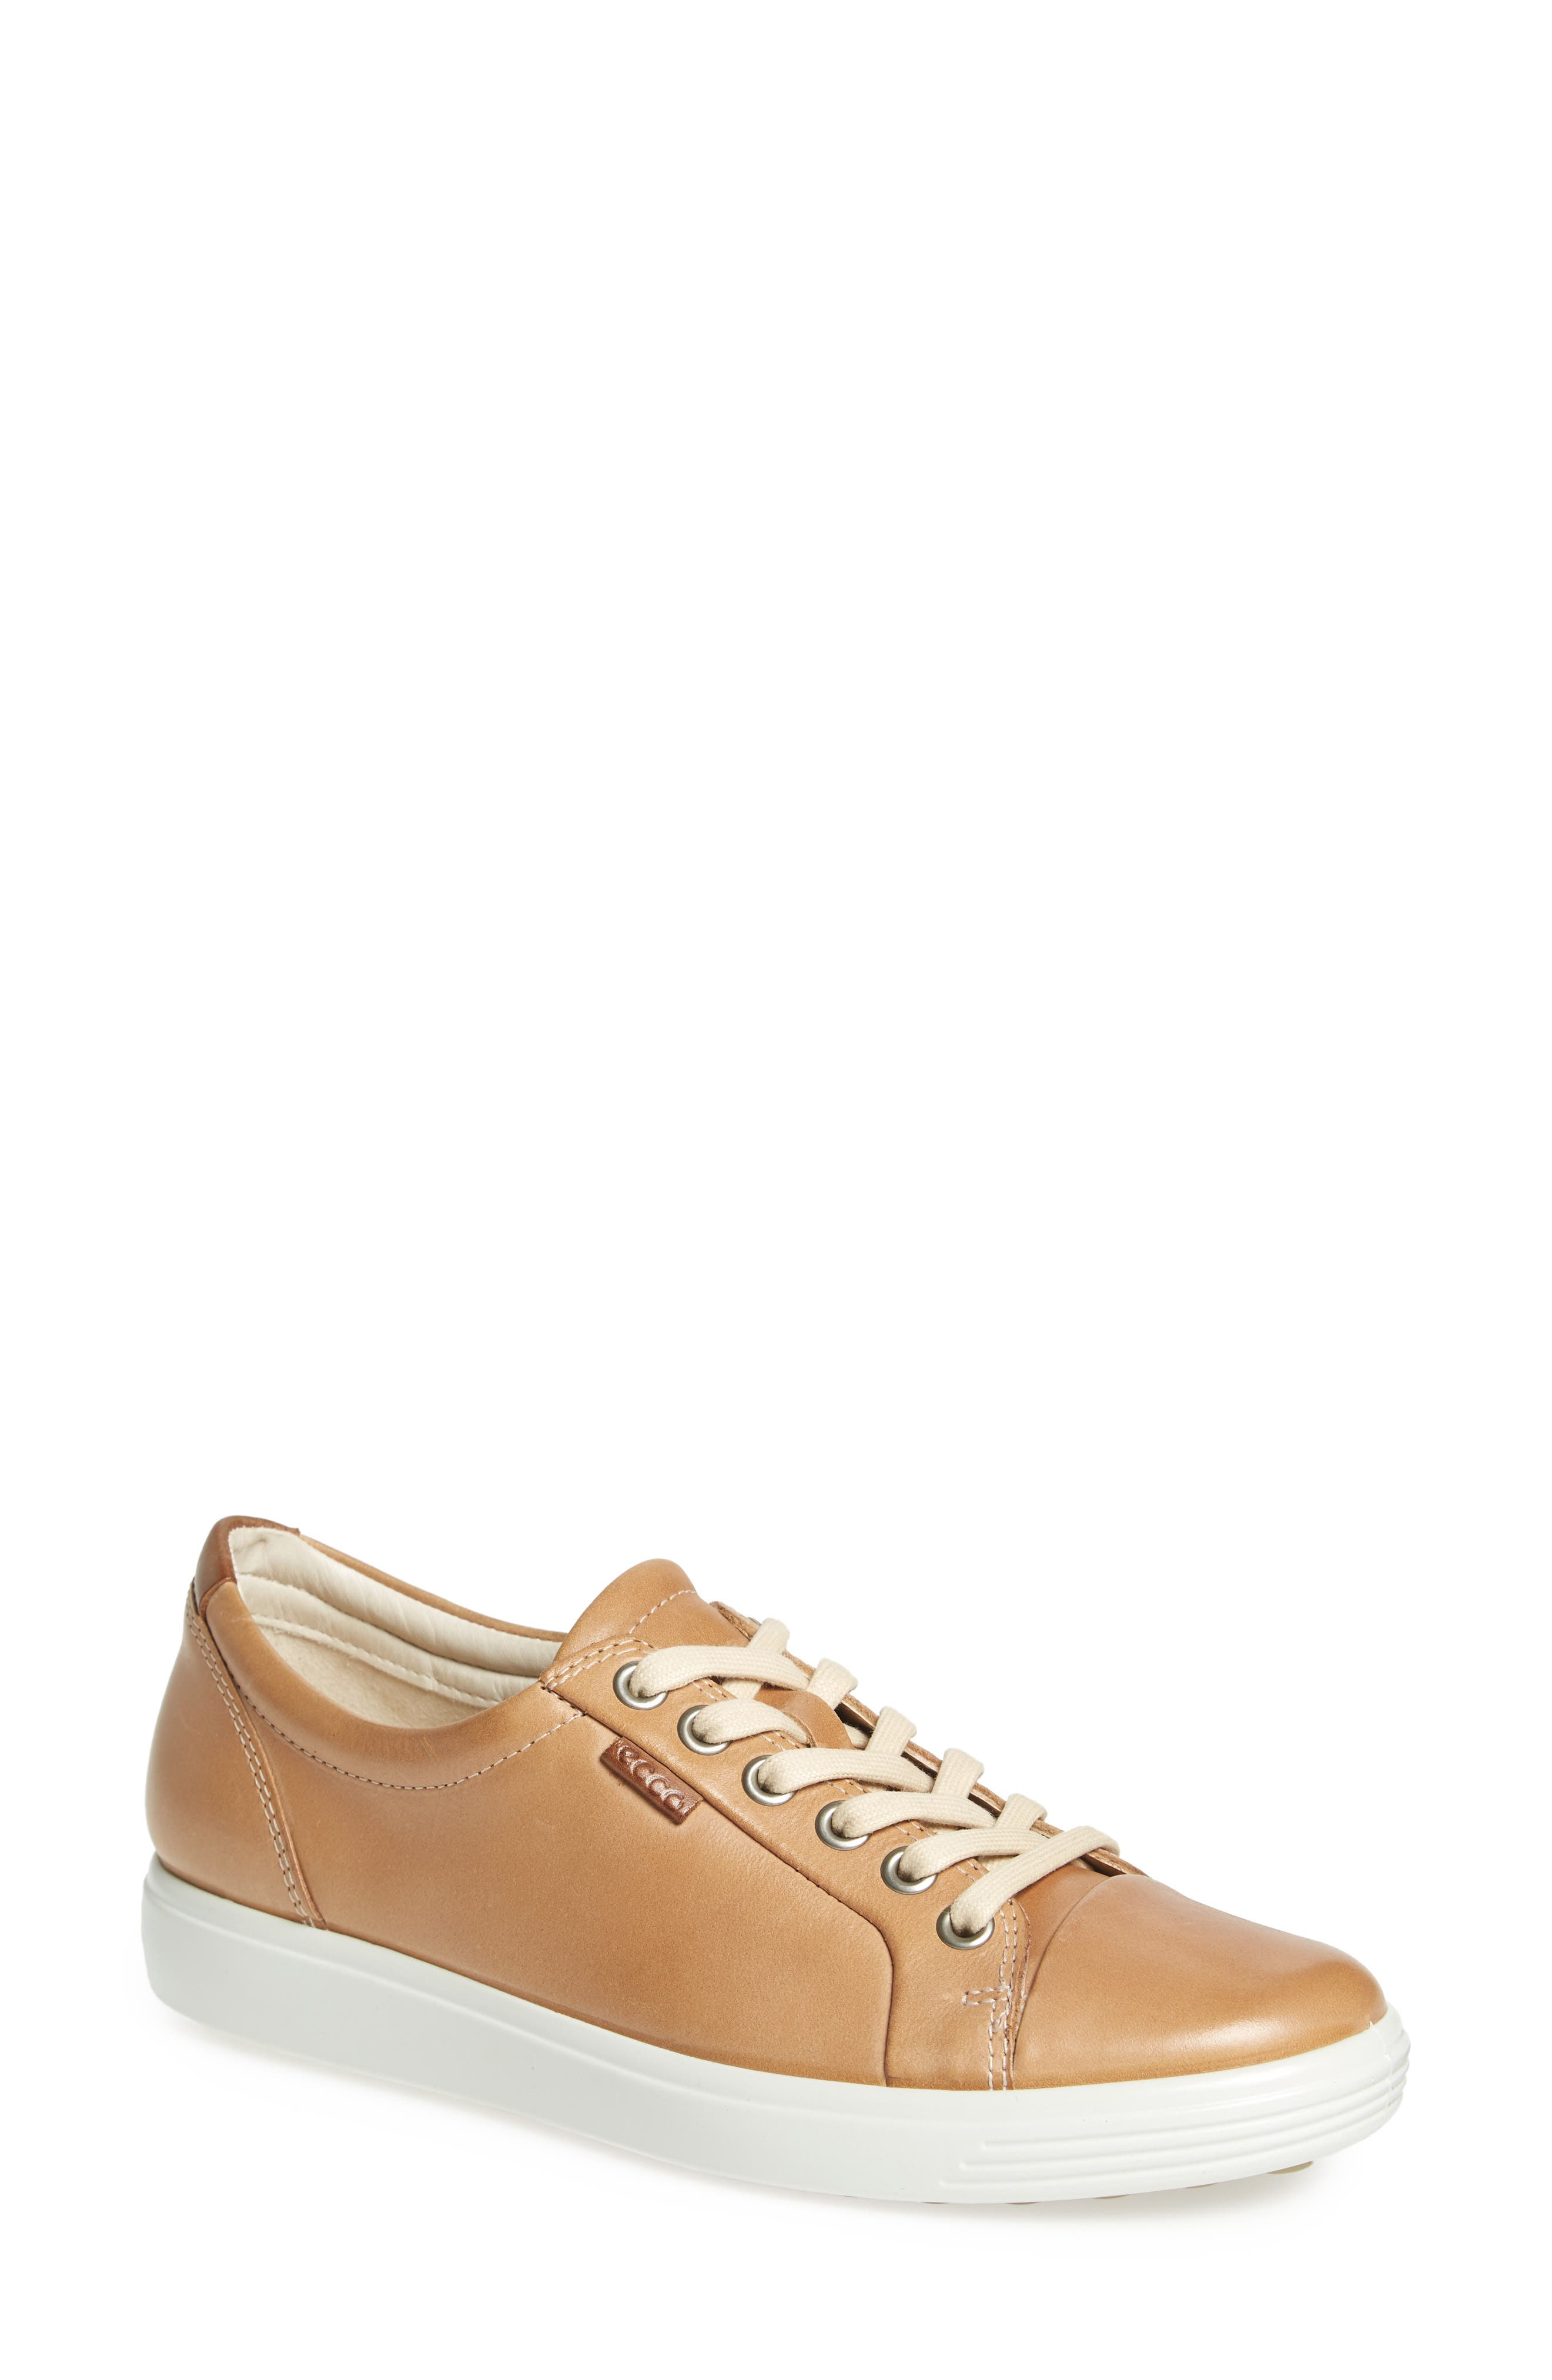 Soft 7 Sneaker,                             Main thumbnail 1, color,                             POWDER LEATHER